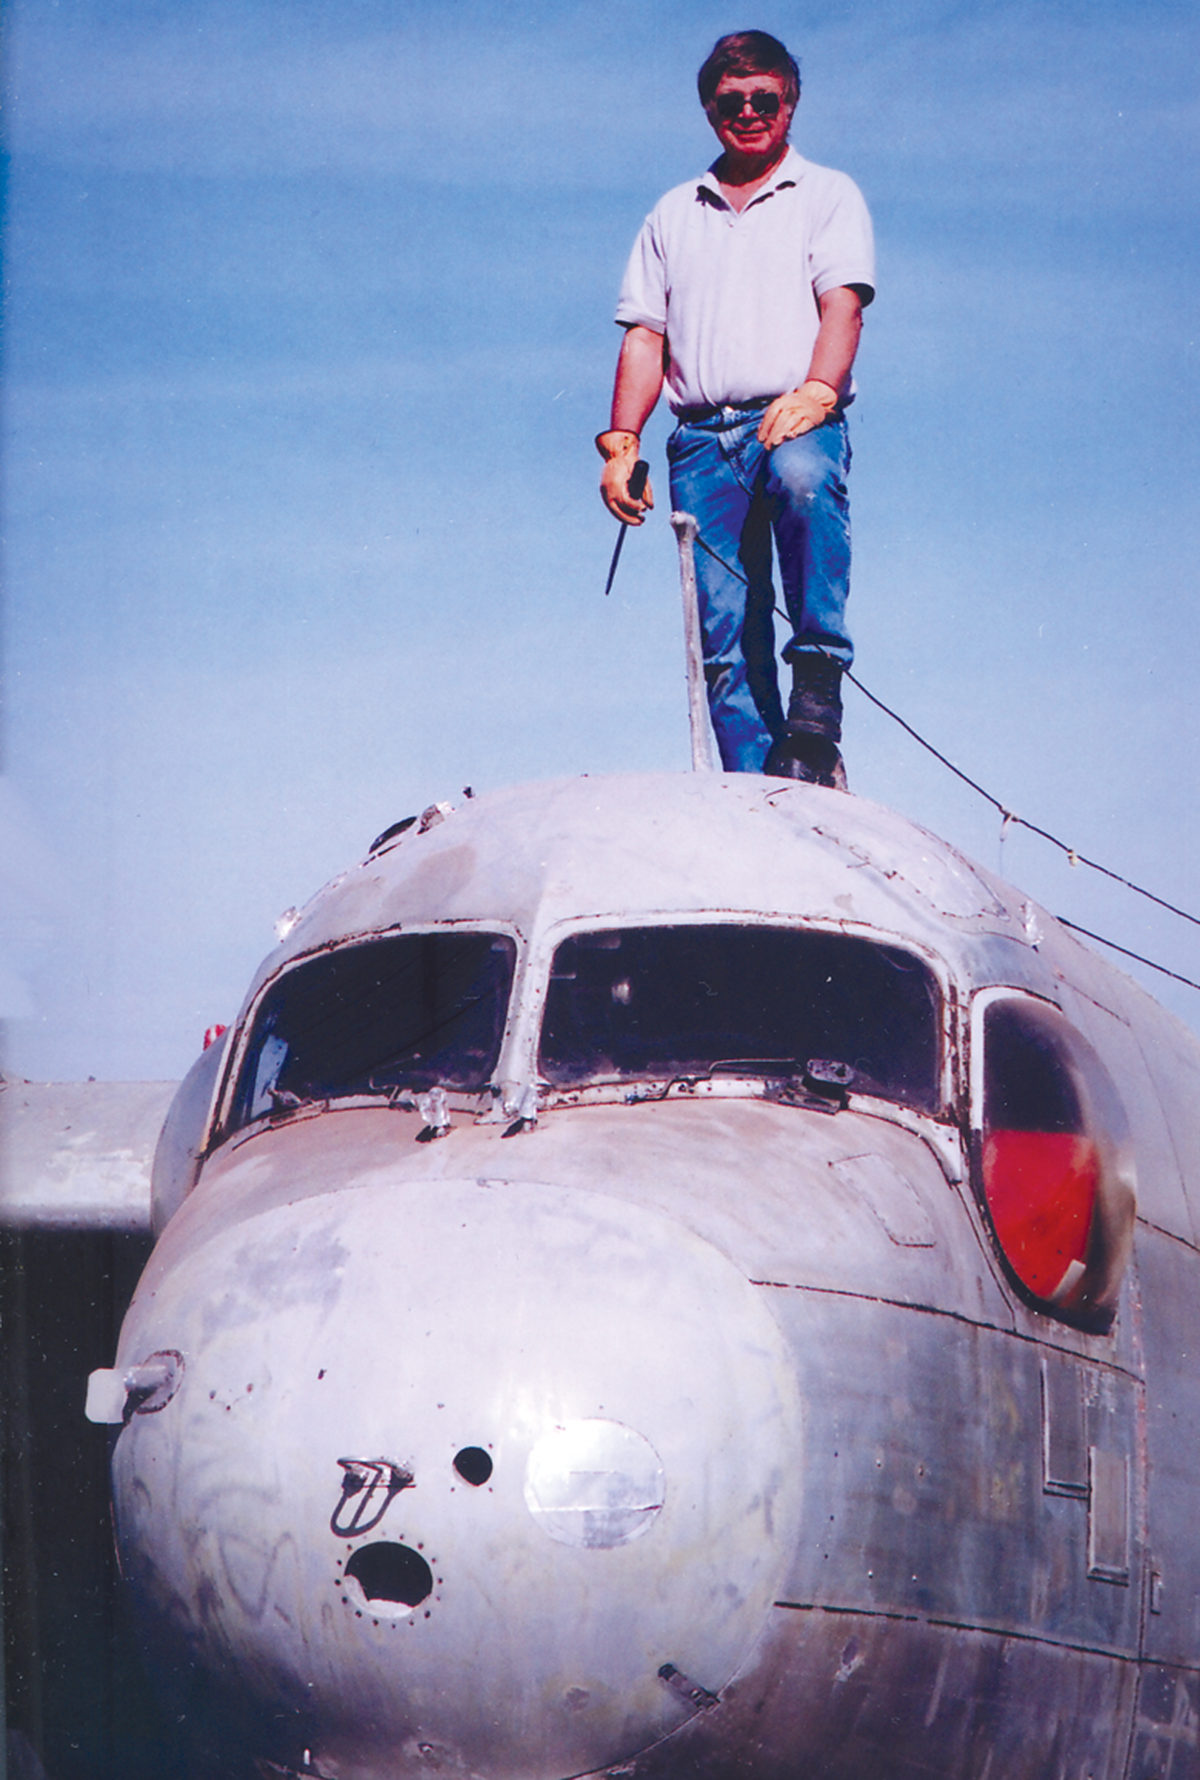 hans_standing_on_c-1a_large